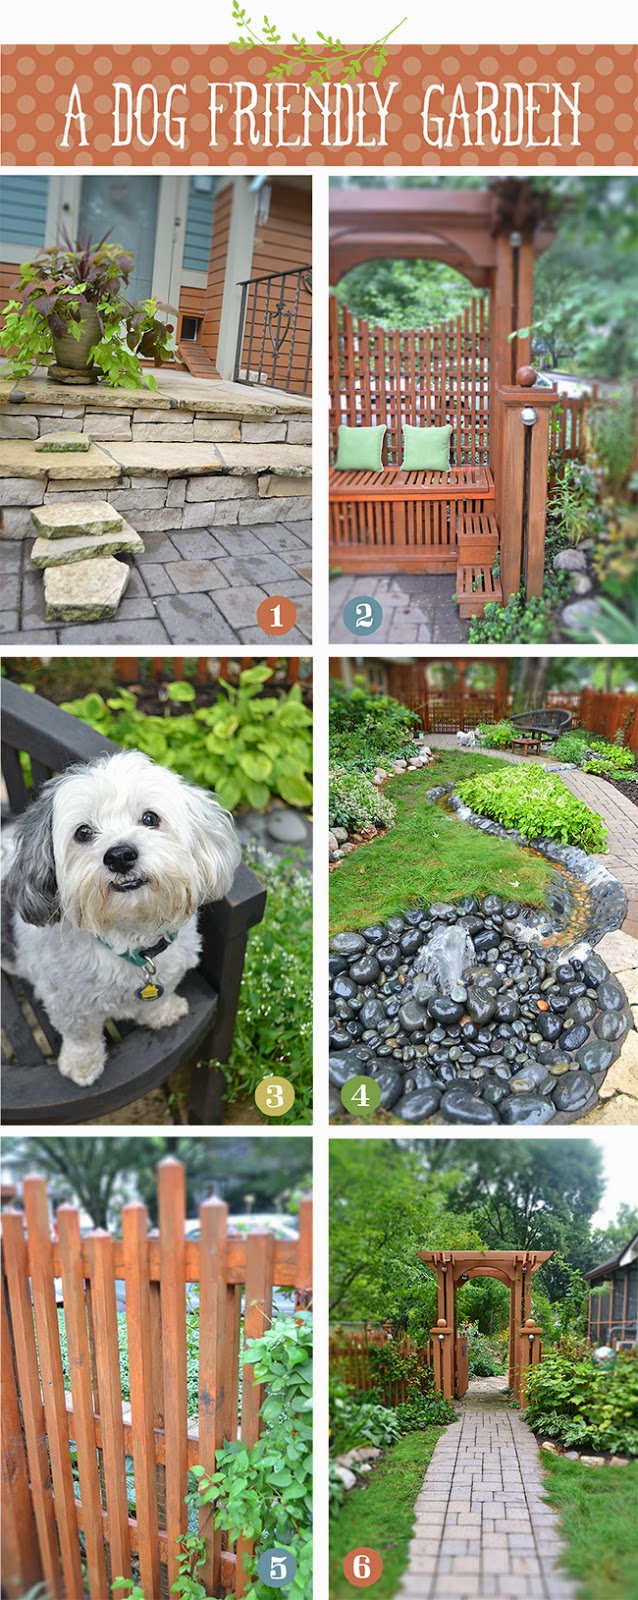 Lisa orgler design a dog friendly garden for Garden designs for dogs